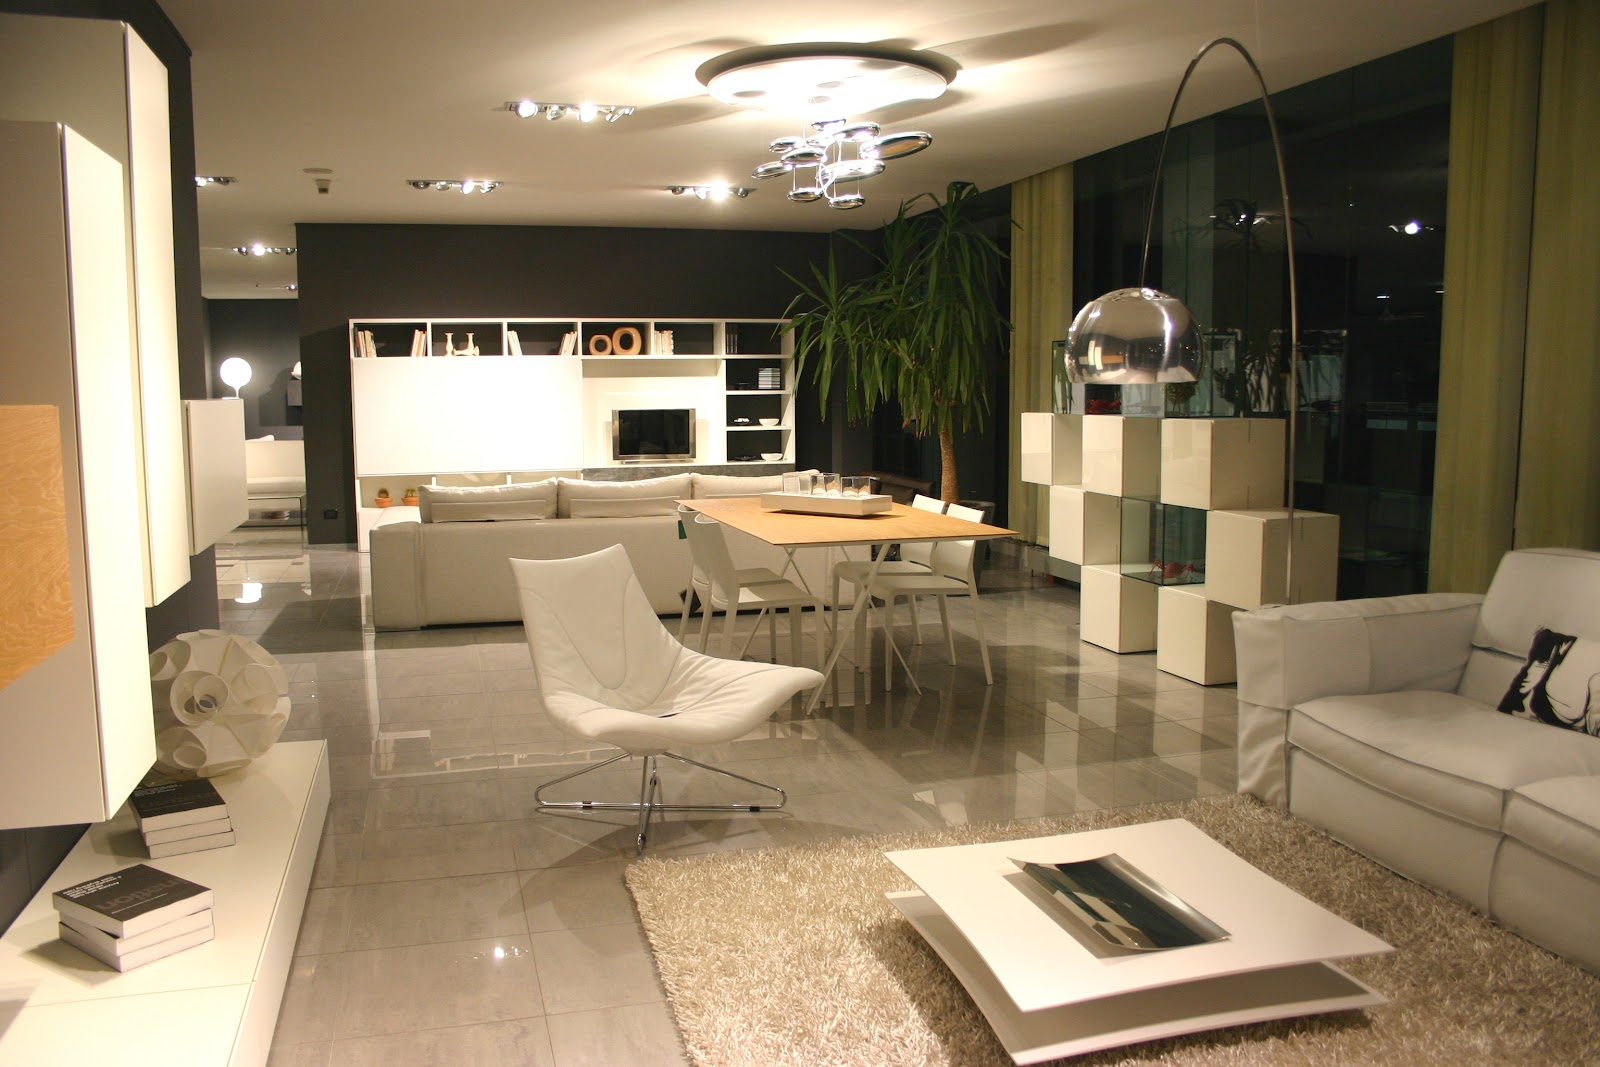 Showroom carminati e sonzognicarminati e sonzogni for Salotto lago